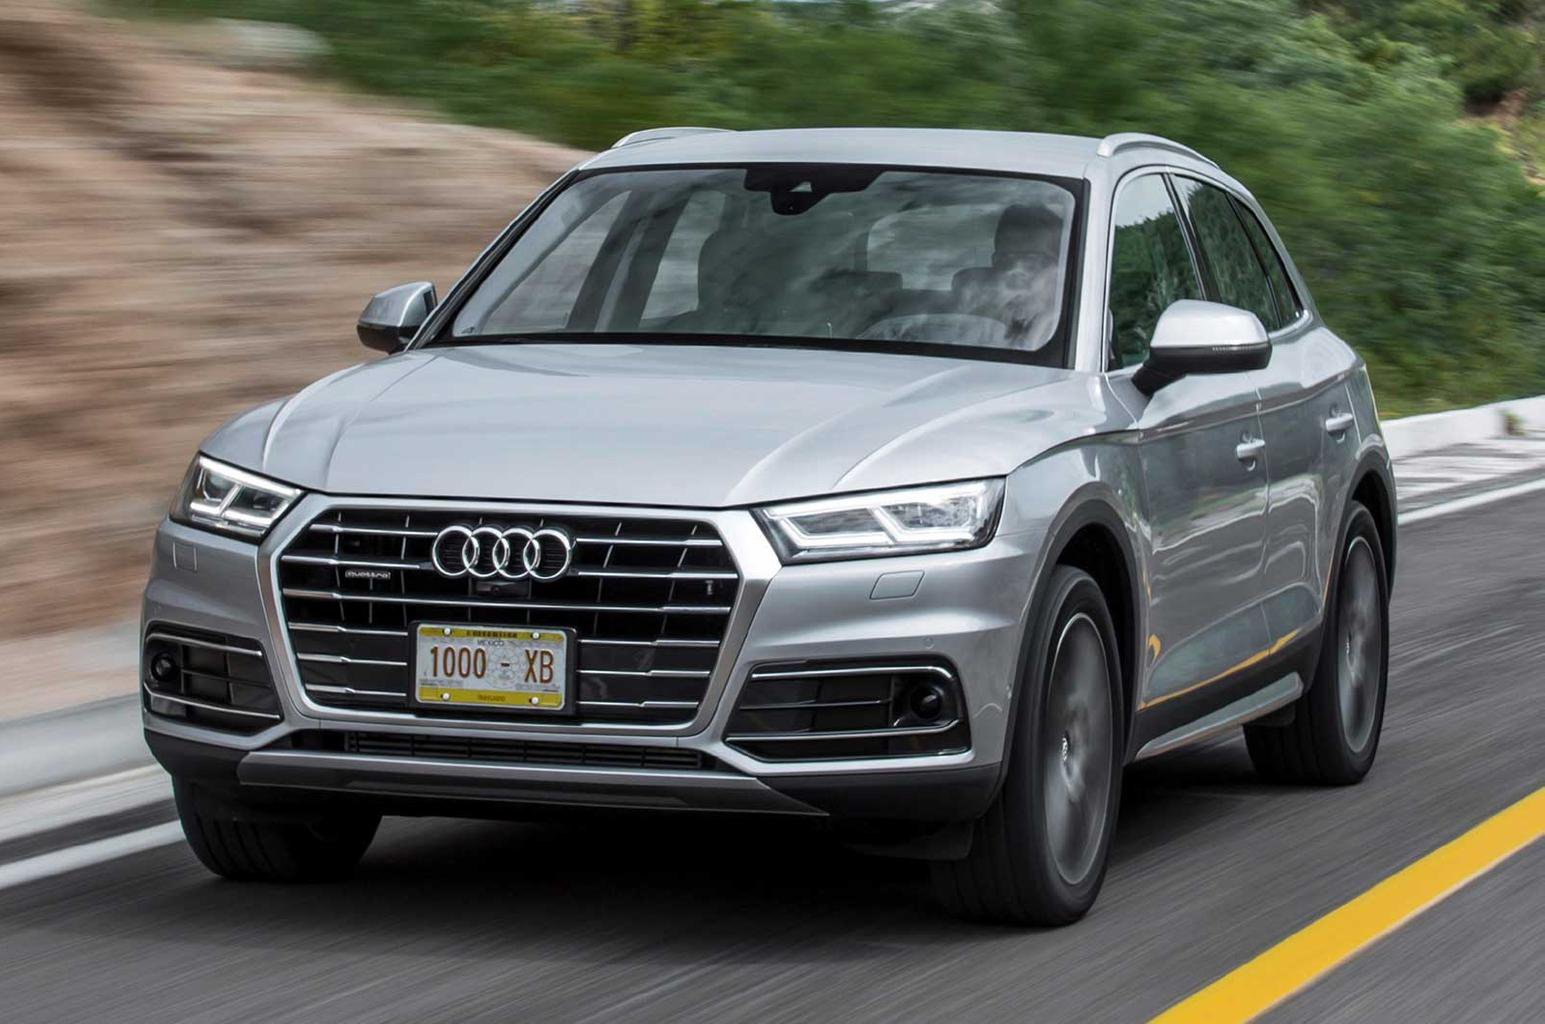 2017 Audi Q5 reviewed on video